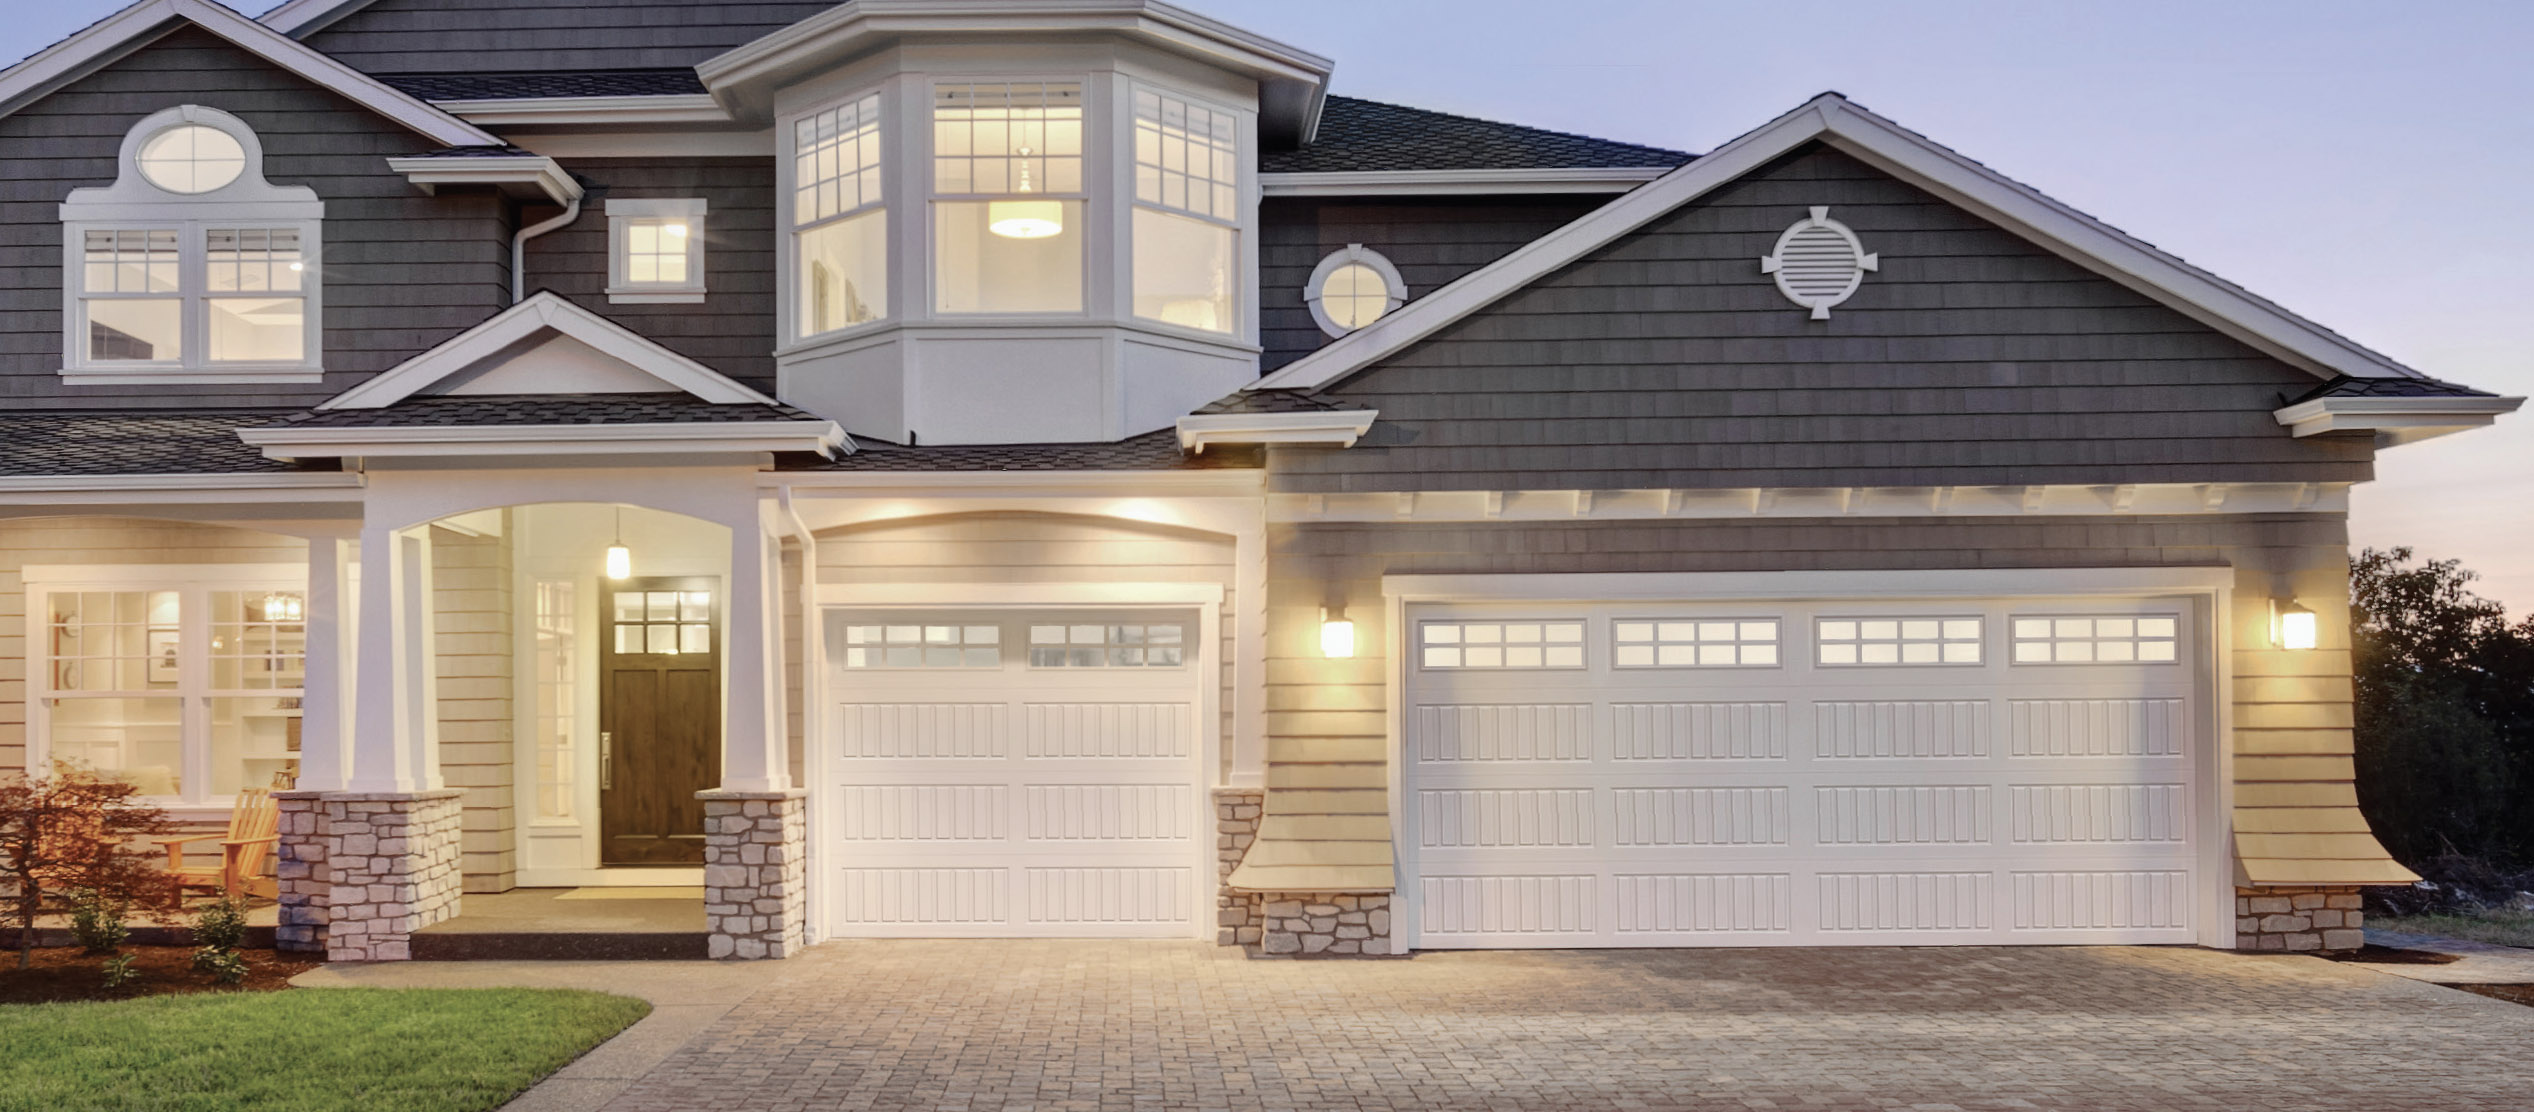 Home With Long Panel Carriage Garage Doors